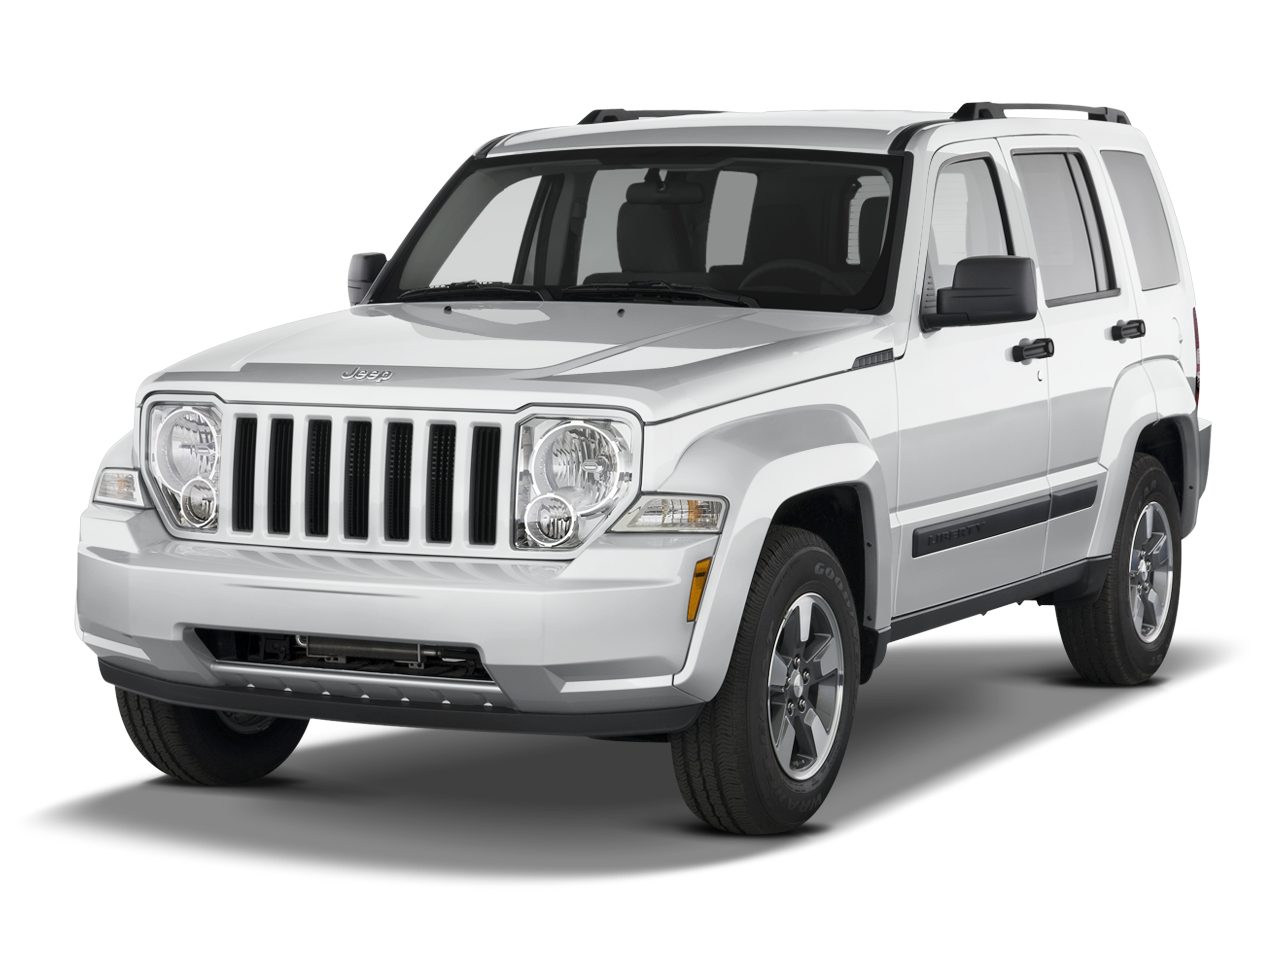 Jeep Liberty (North America) II 2007 - 2012 SUV 5 door #5